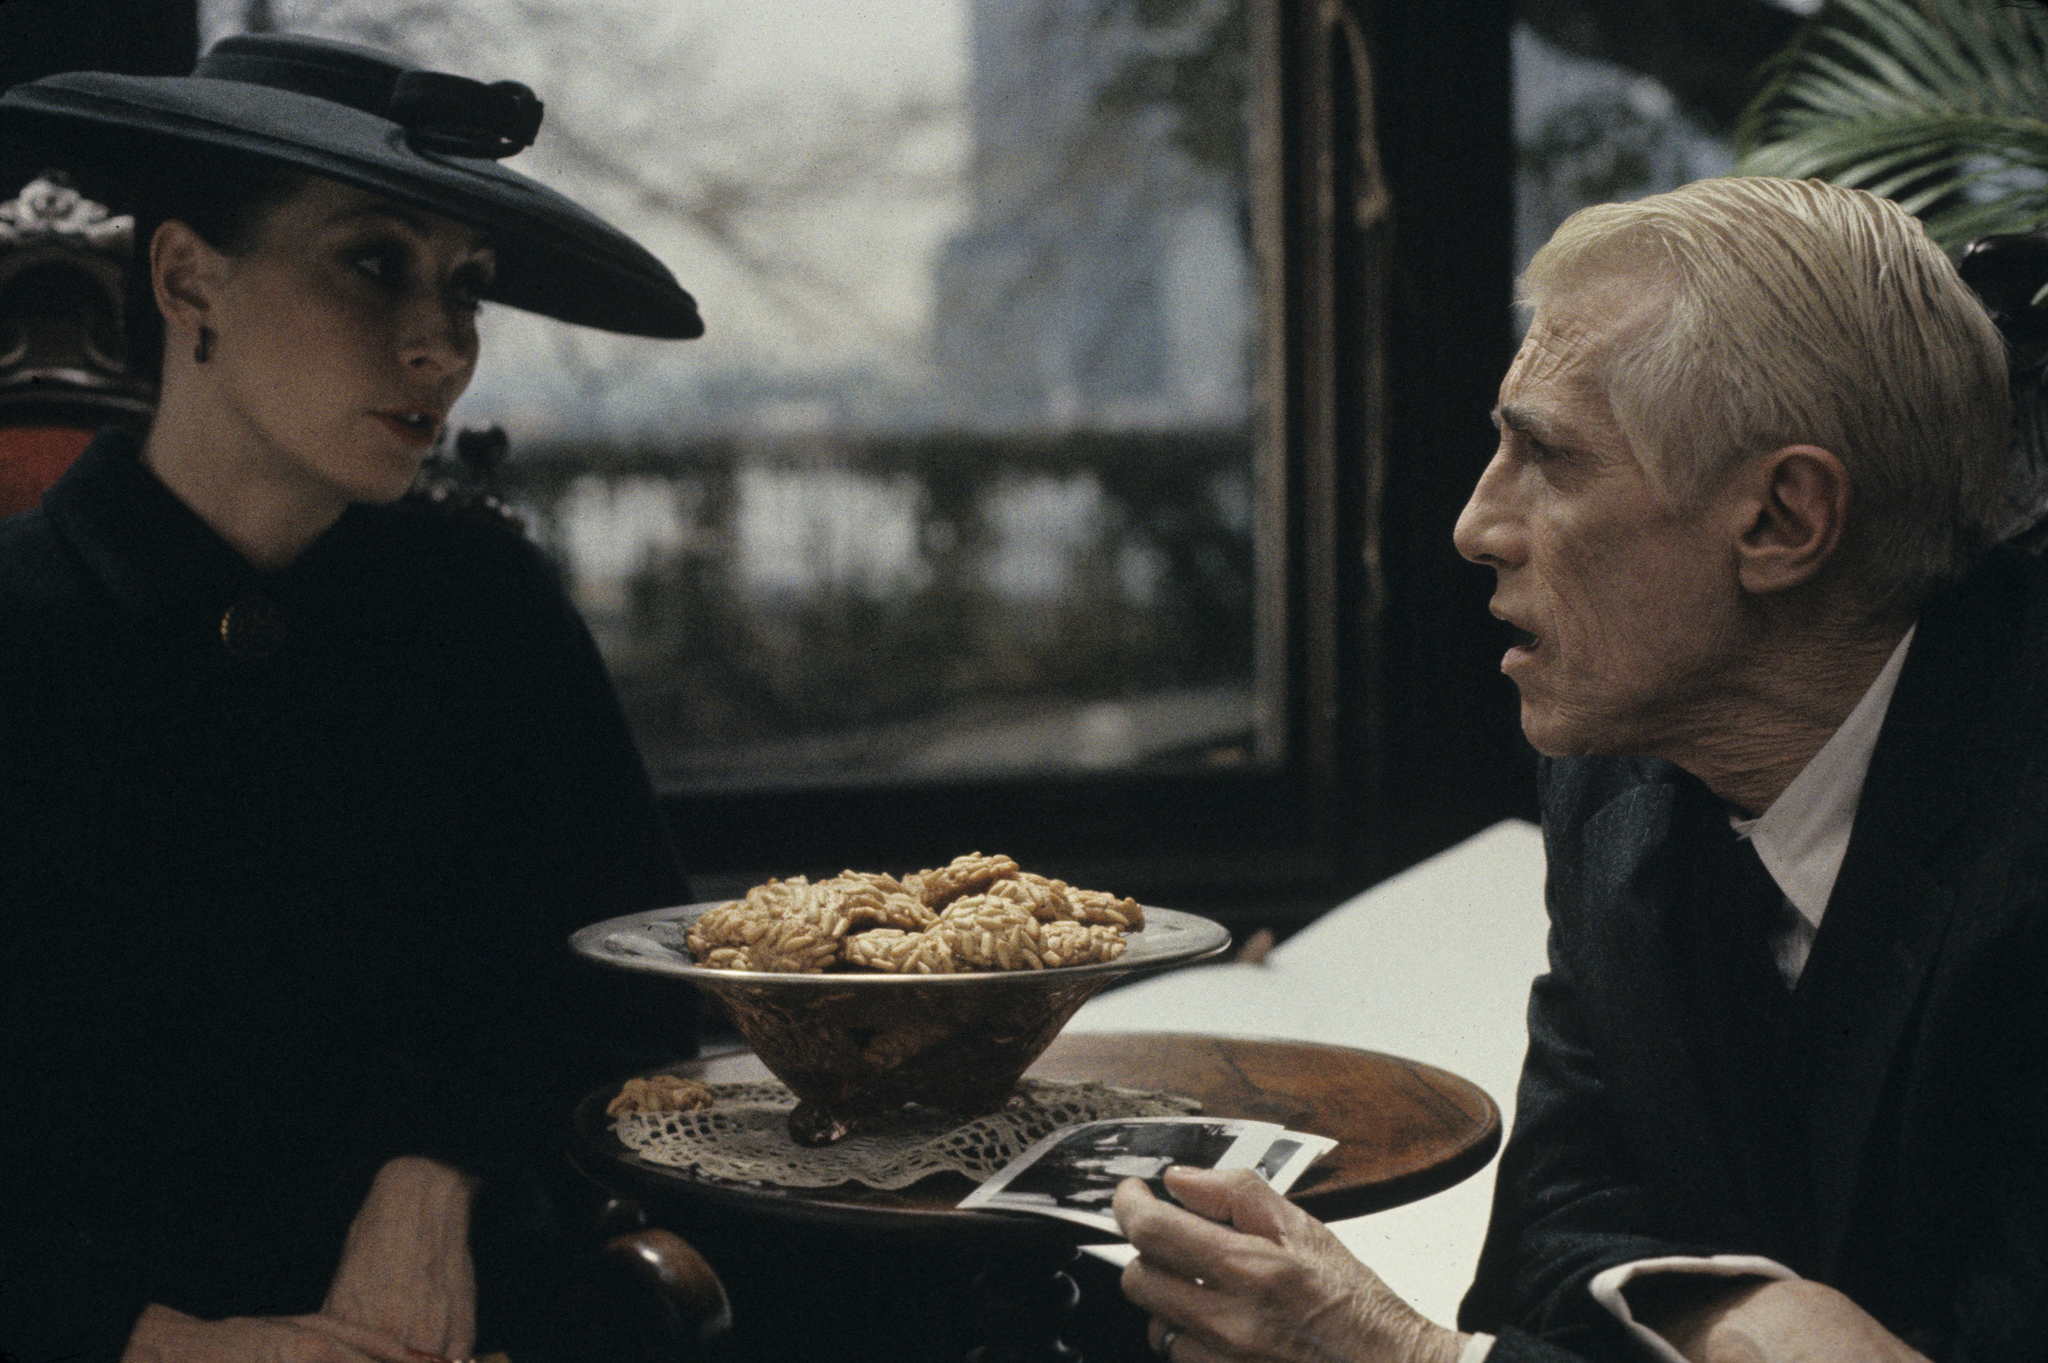 Anjelica Huston and William Hickey in Prizzi's Honor (1985)